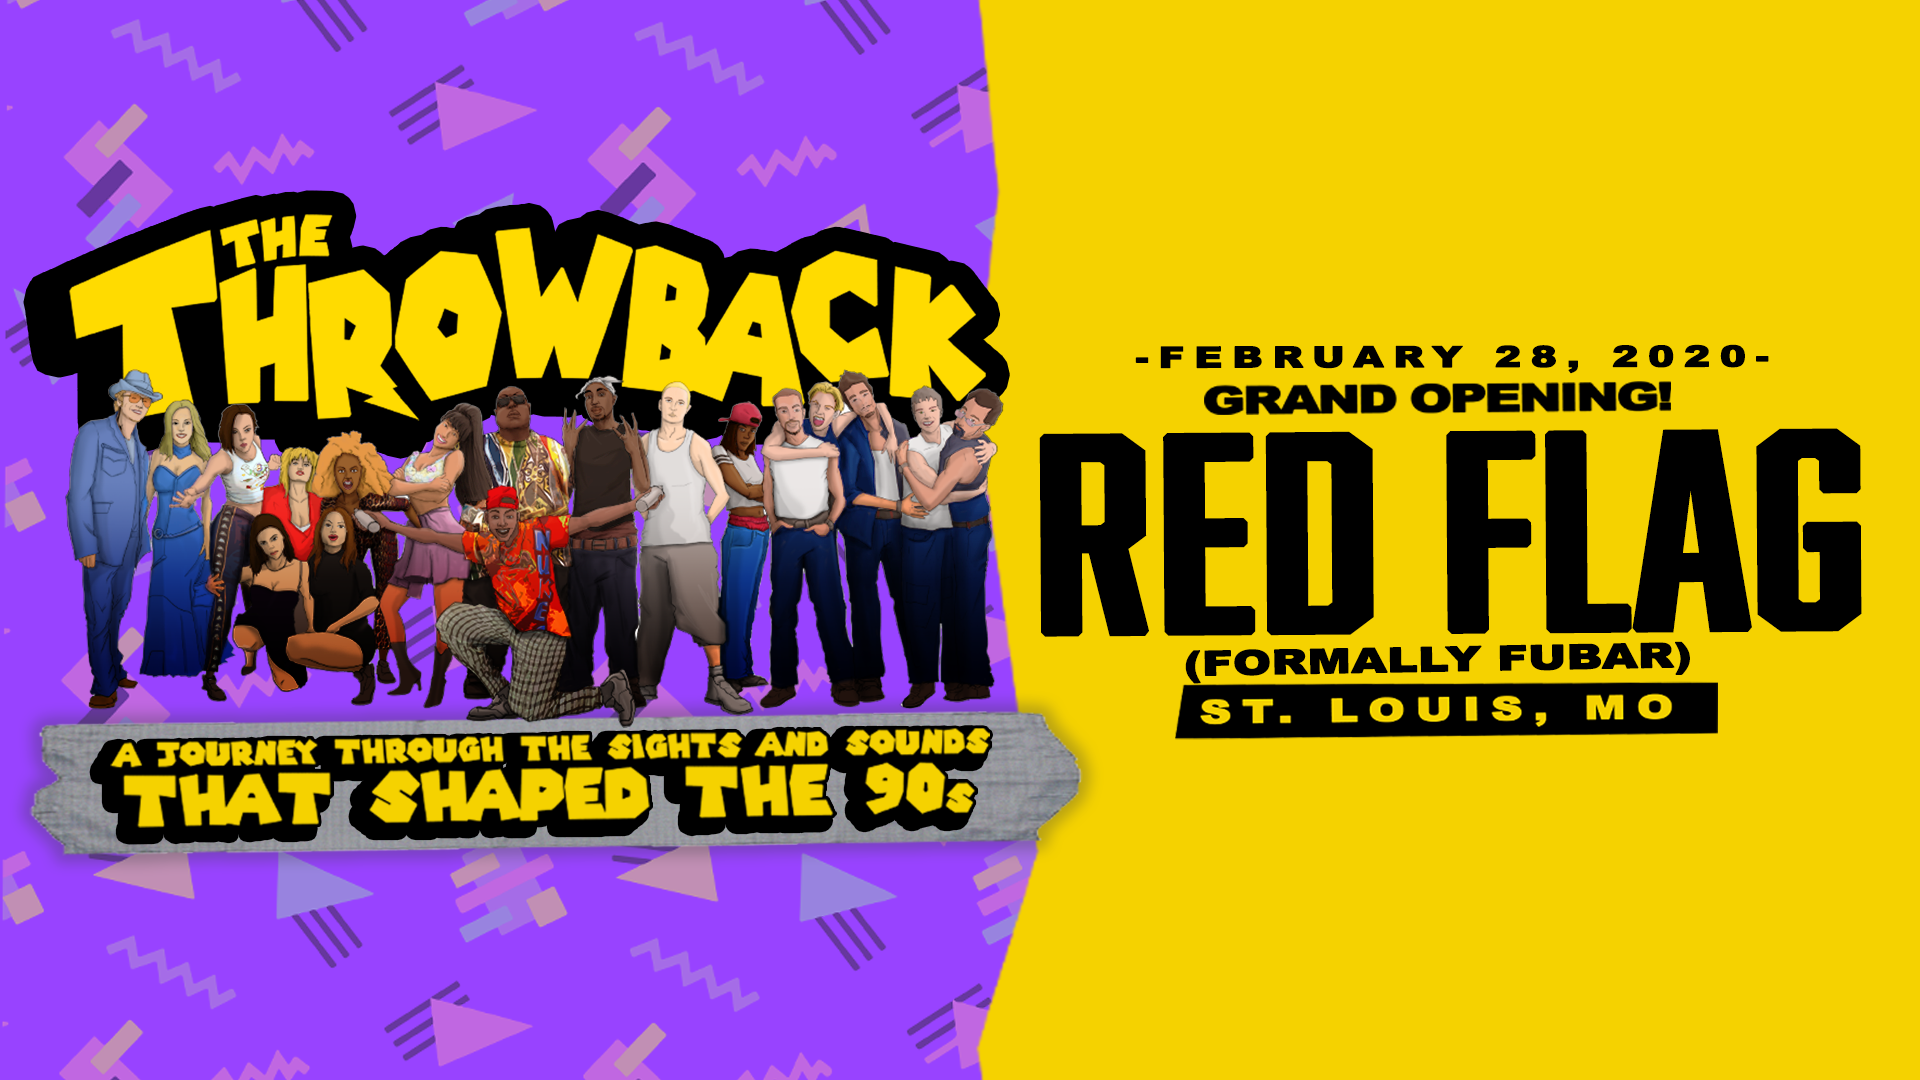 The Throwback Party at Red Flag